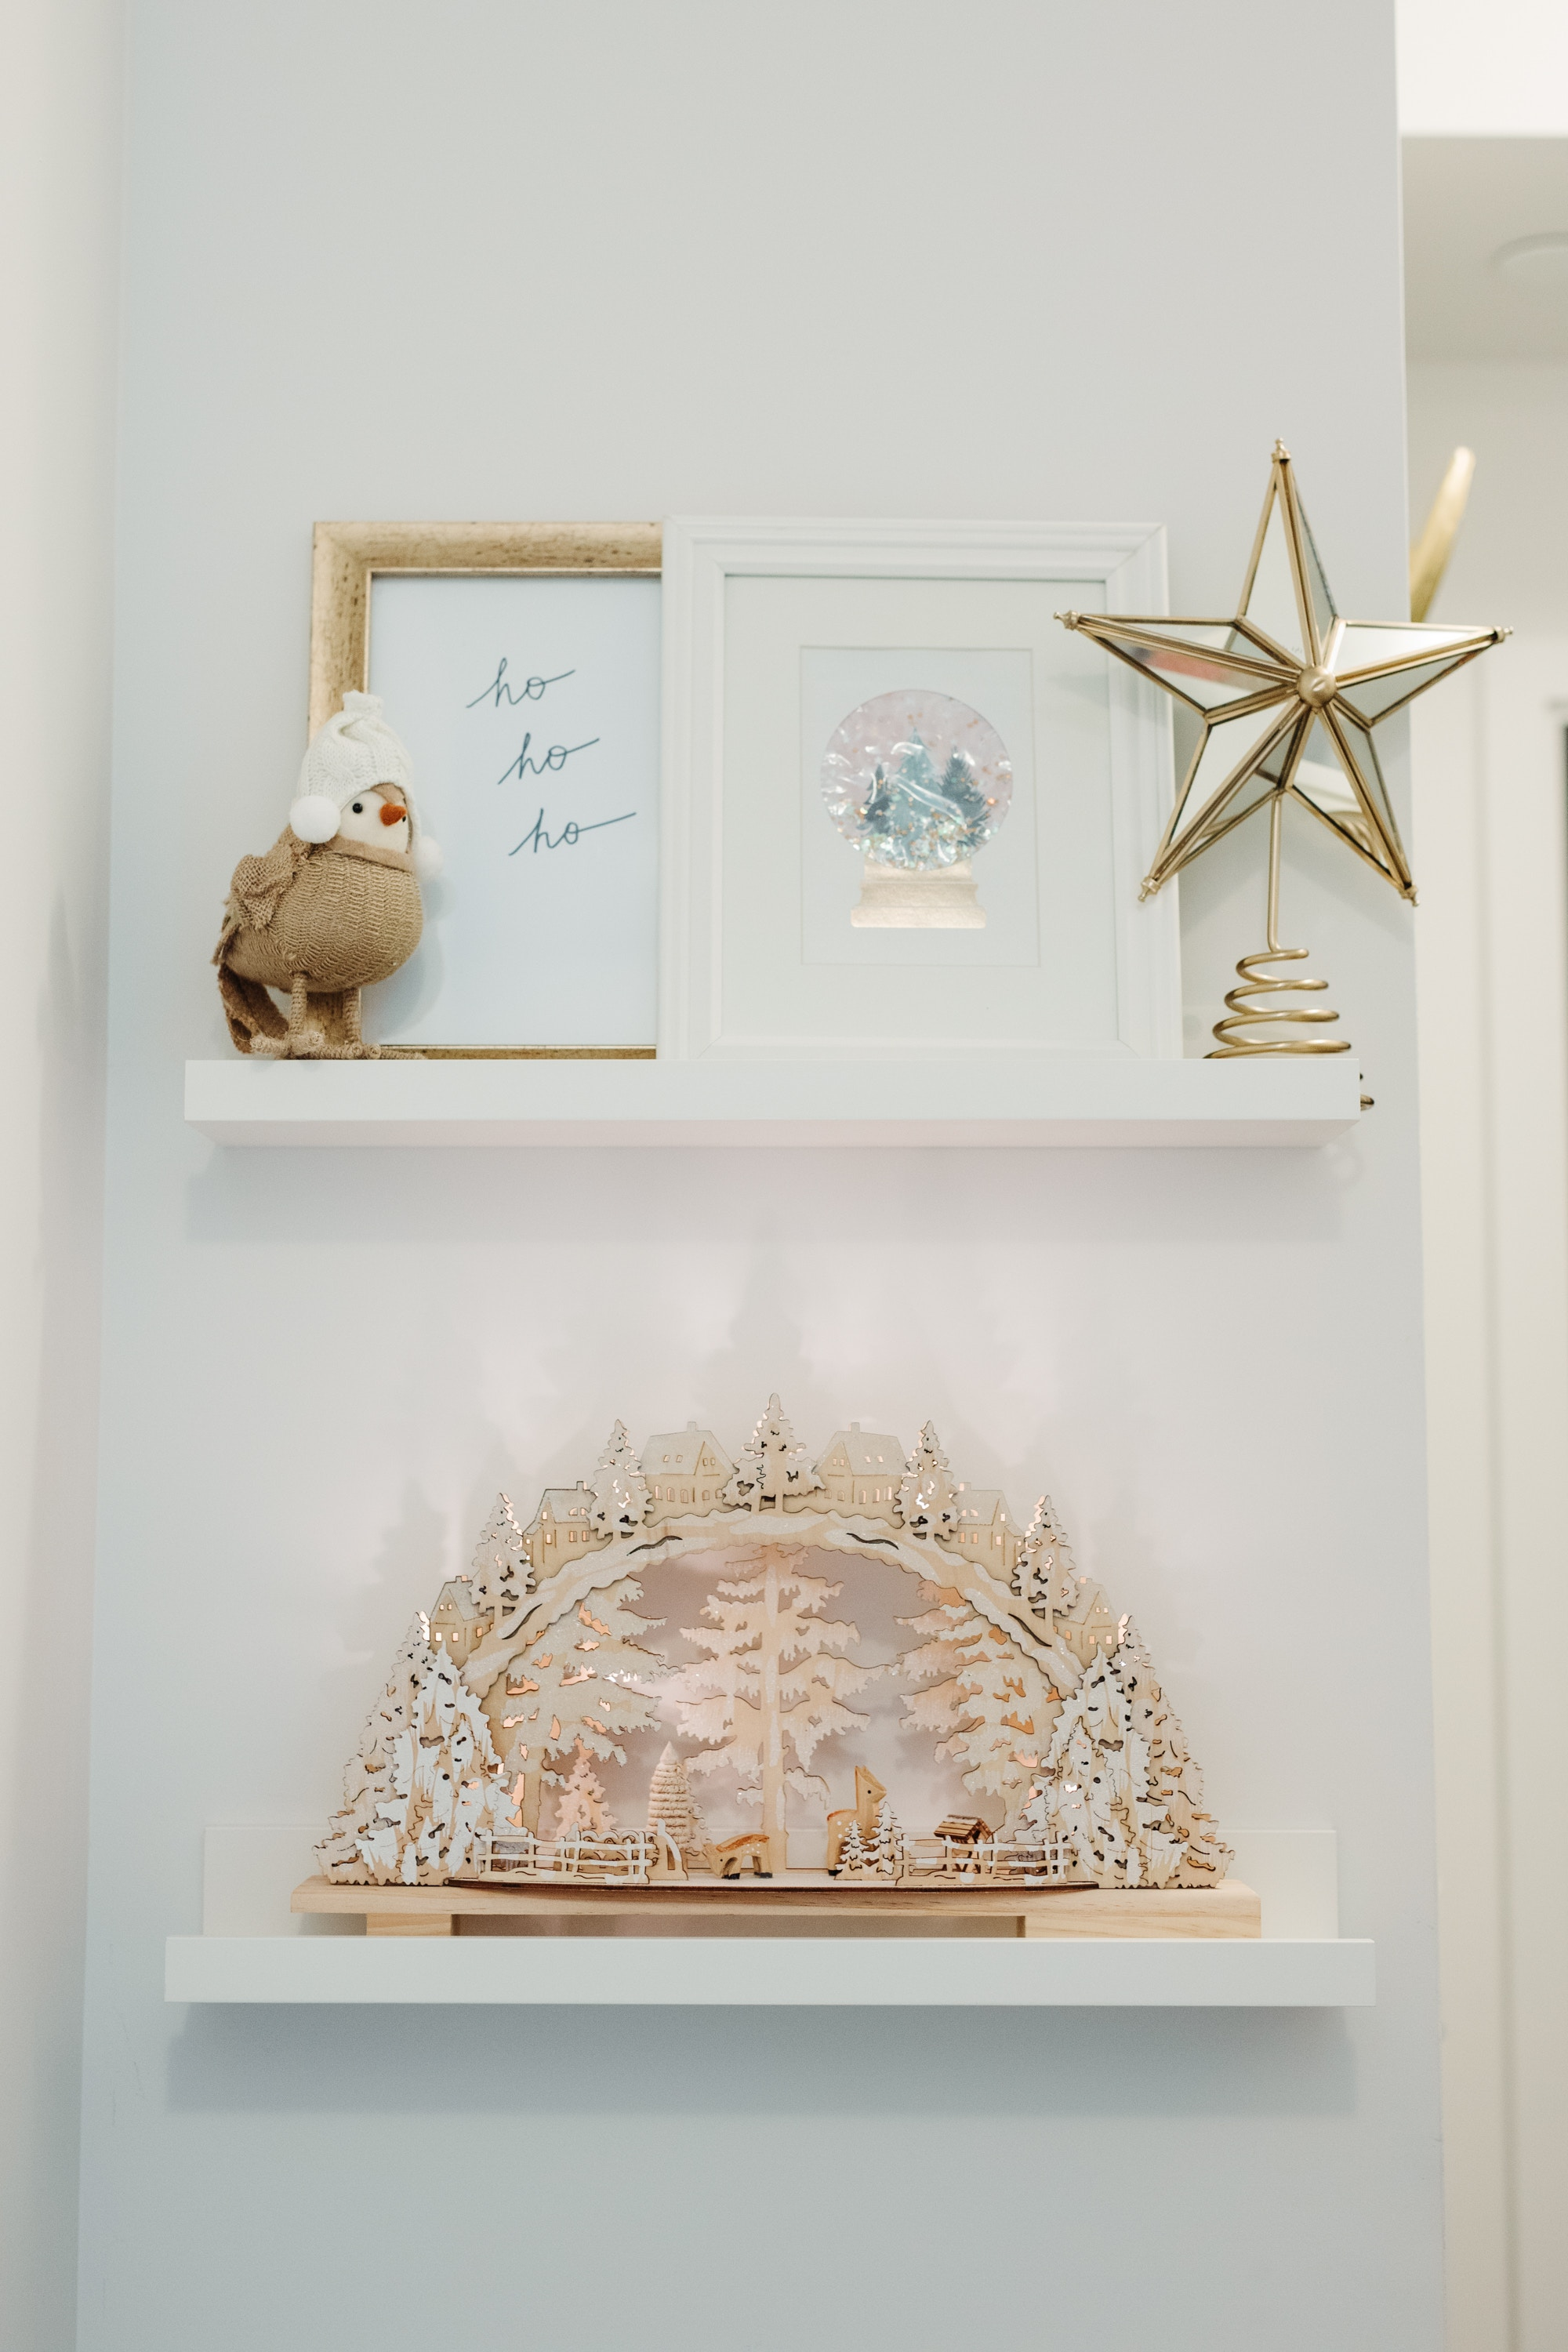 Redecorate your picture ledges with festive Christmas accessories, including a show-stopping wood winterland scene.